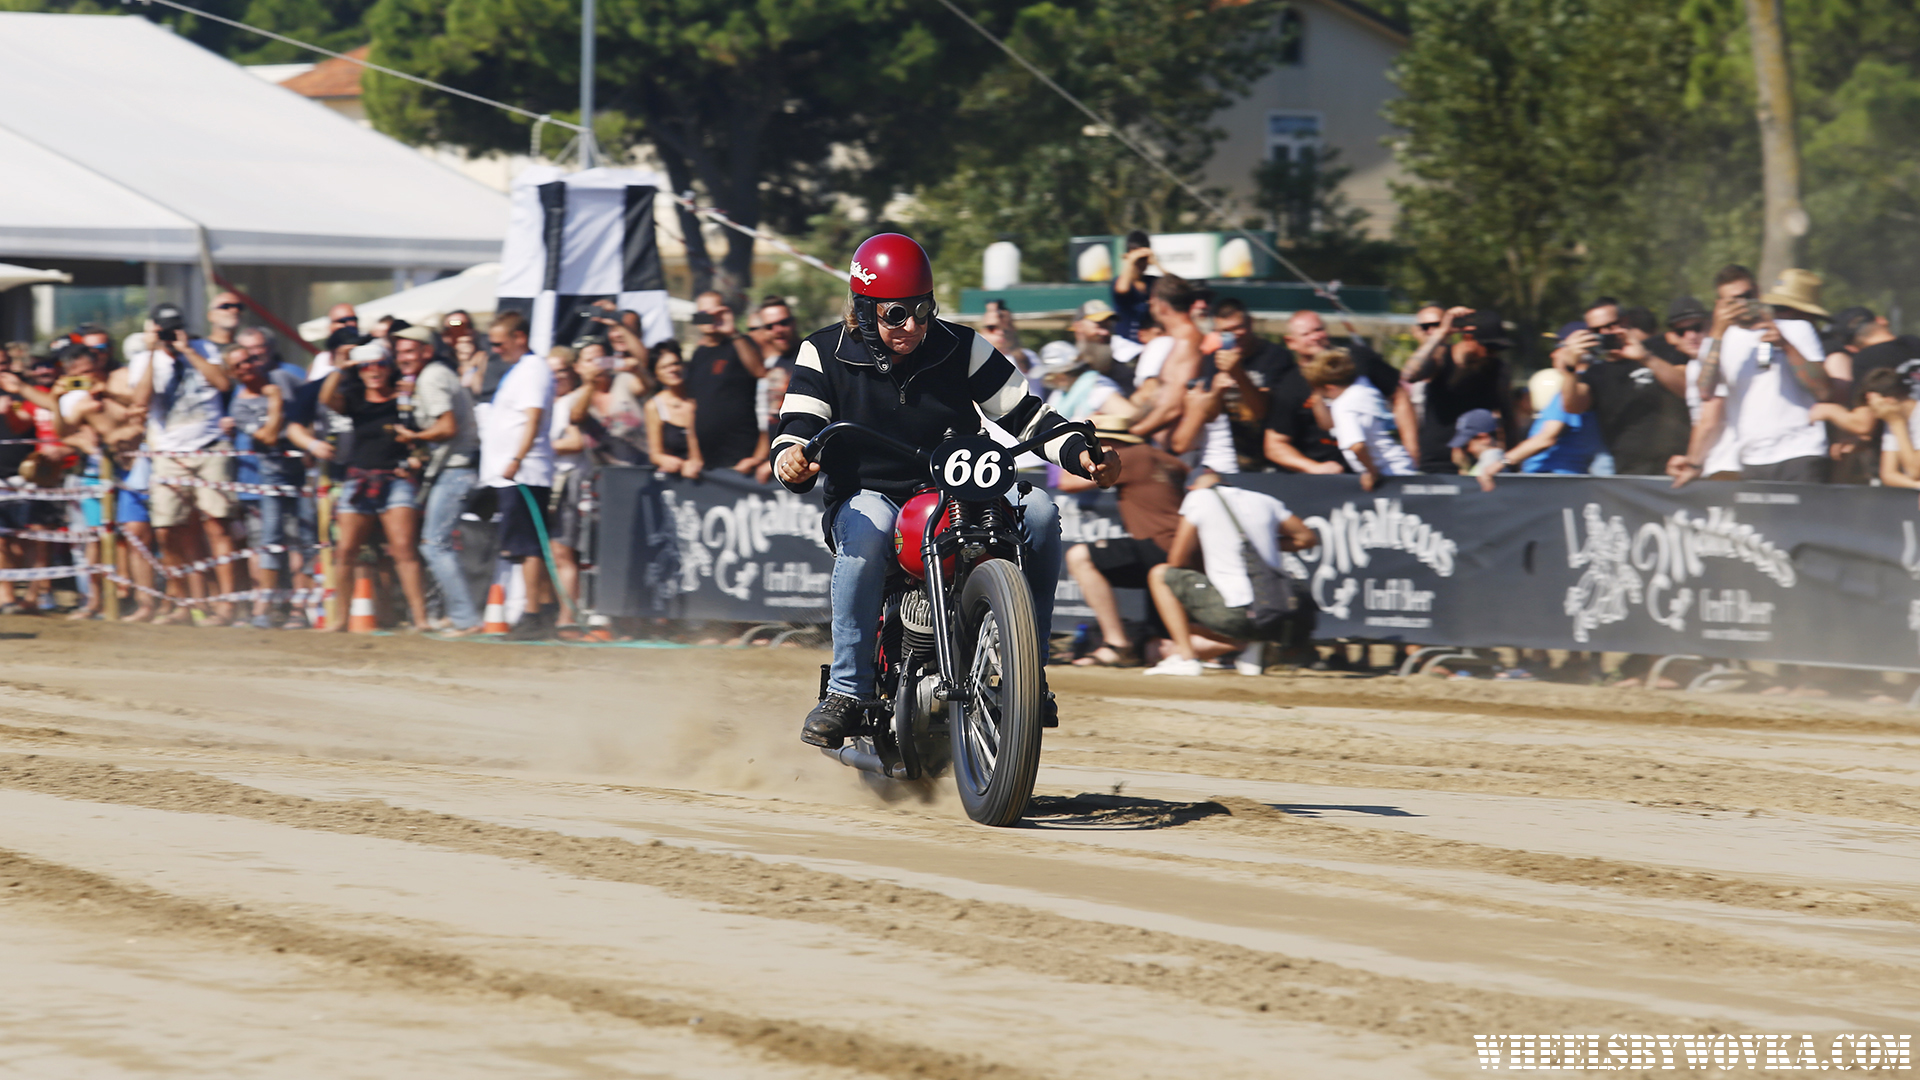 roll-flat-venice-hot-rod-beach-race-trog-by-wheelsbywovka-32